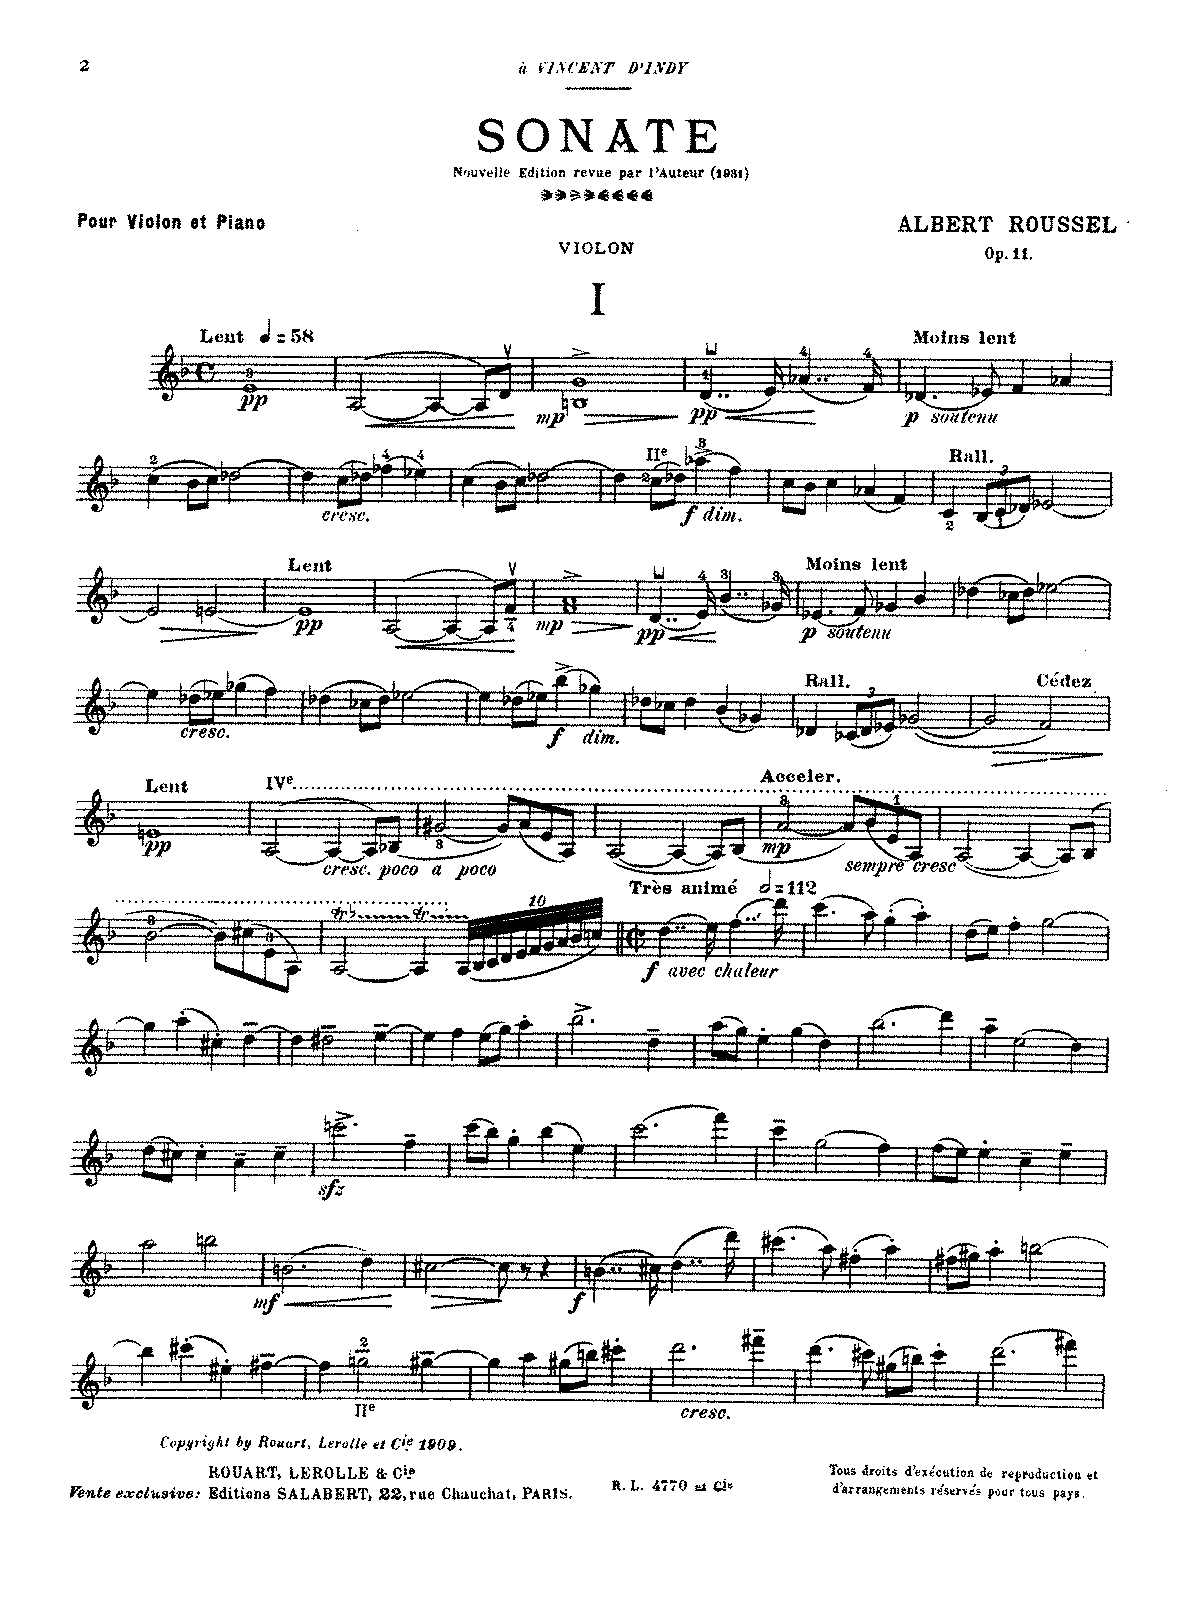 Roussel - Sonata for Violin and Piano No. 1, Op. 11.pdf